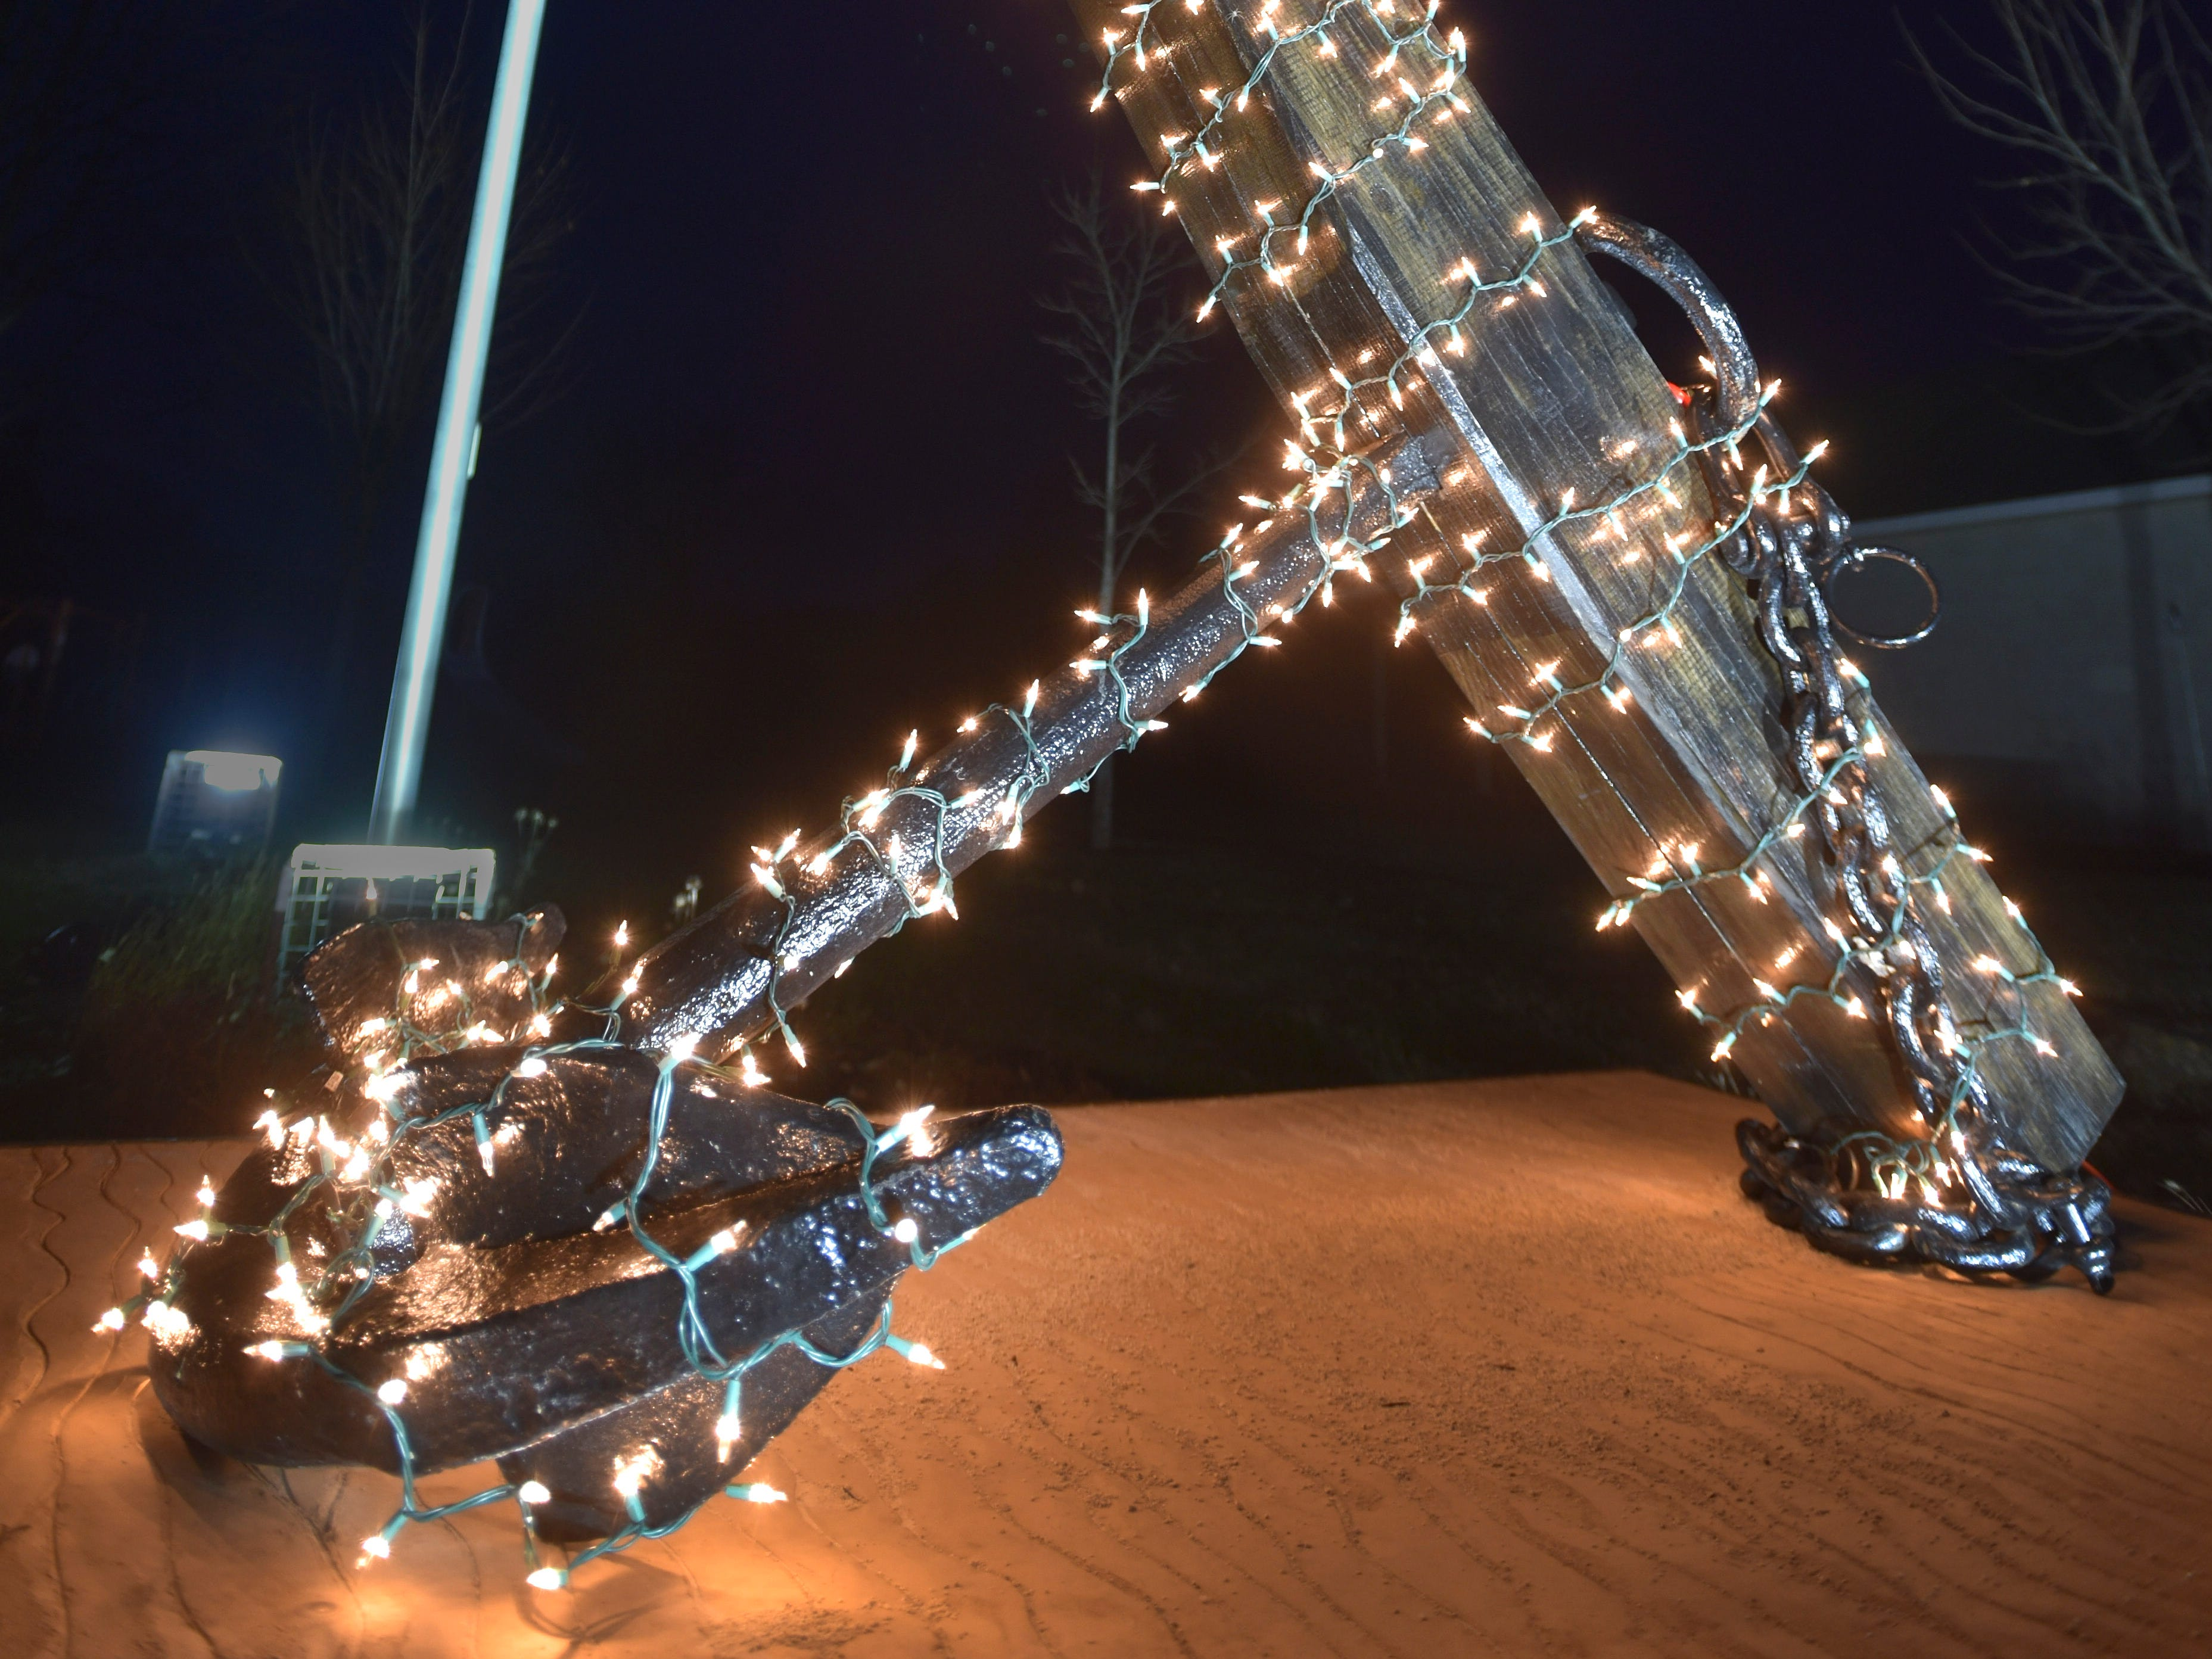 In honor of U.S. Navy Seal Chief Petty Officer Jason Freiwald, this 1,000-pound anchor is decorated with Christmas lights at his Armada Township park memorial, Wednesday night, Dec. 12, 2018. Freiwald, an Armada High School graduate, was killed in action during a deployment on Sept. 11, 2008. The anchor is from the 1840s and believed to be from a wooden schooner. The memorial was dedicated at noon, Sunday, Sept. 11, 2018.